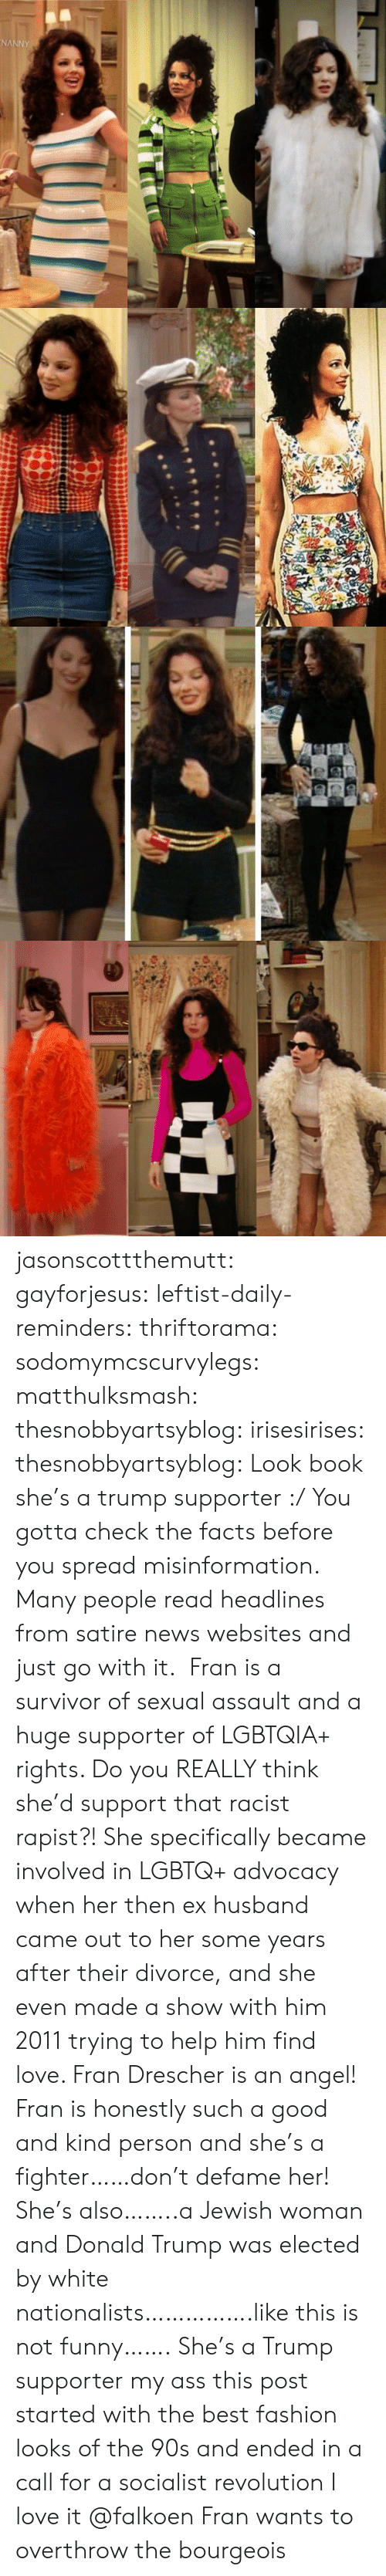 Ass, Donald Trump, and Facts: jasonscottthemutt:  gayforjesus:  leftist-daily-reminders:  thriftorama:  sodomymcscurvylegs:  matthulksmash:   thesnobbyartsyblog:  irisesirises:  thesnobbyartsyblog: Look book she's a trump supporter :/  You gotta check the facts before you spread misinformation. Many people read headlines from satire news websites and just go with it.  Fran is a survivor of sexual assault and a huge supporter of LGBTQIA+ rights. Do you REALLY think she'd support that racist rapist?!   She specifically became involved in LGBTQ+ advocacy when her then ex husband came out to her some years after their divorce, and she even made a show with him 2011 trying to help him find love. Fran Drescher is an angel!  Fran is honestly such a good and kind person and she's a fighter……don't defame her! She's also……..a Jewish woman and Donald Trump was elected by white nationalists…………….like this is not funny…….  She's a Trump supporter my ass  this post started with the best fashion looks of the 90s and ended in a call for a socialist revolution I love it  @falkoen Fran wants to overthrow the bourgeois